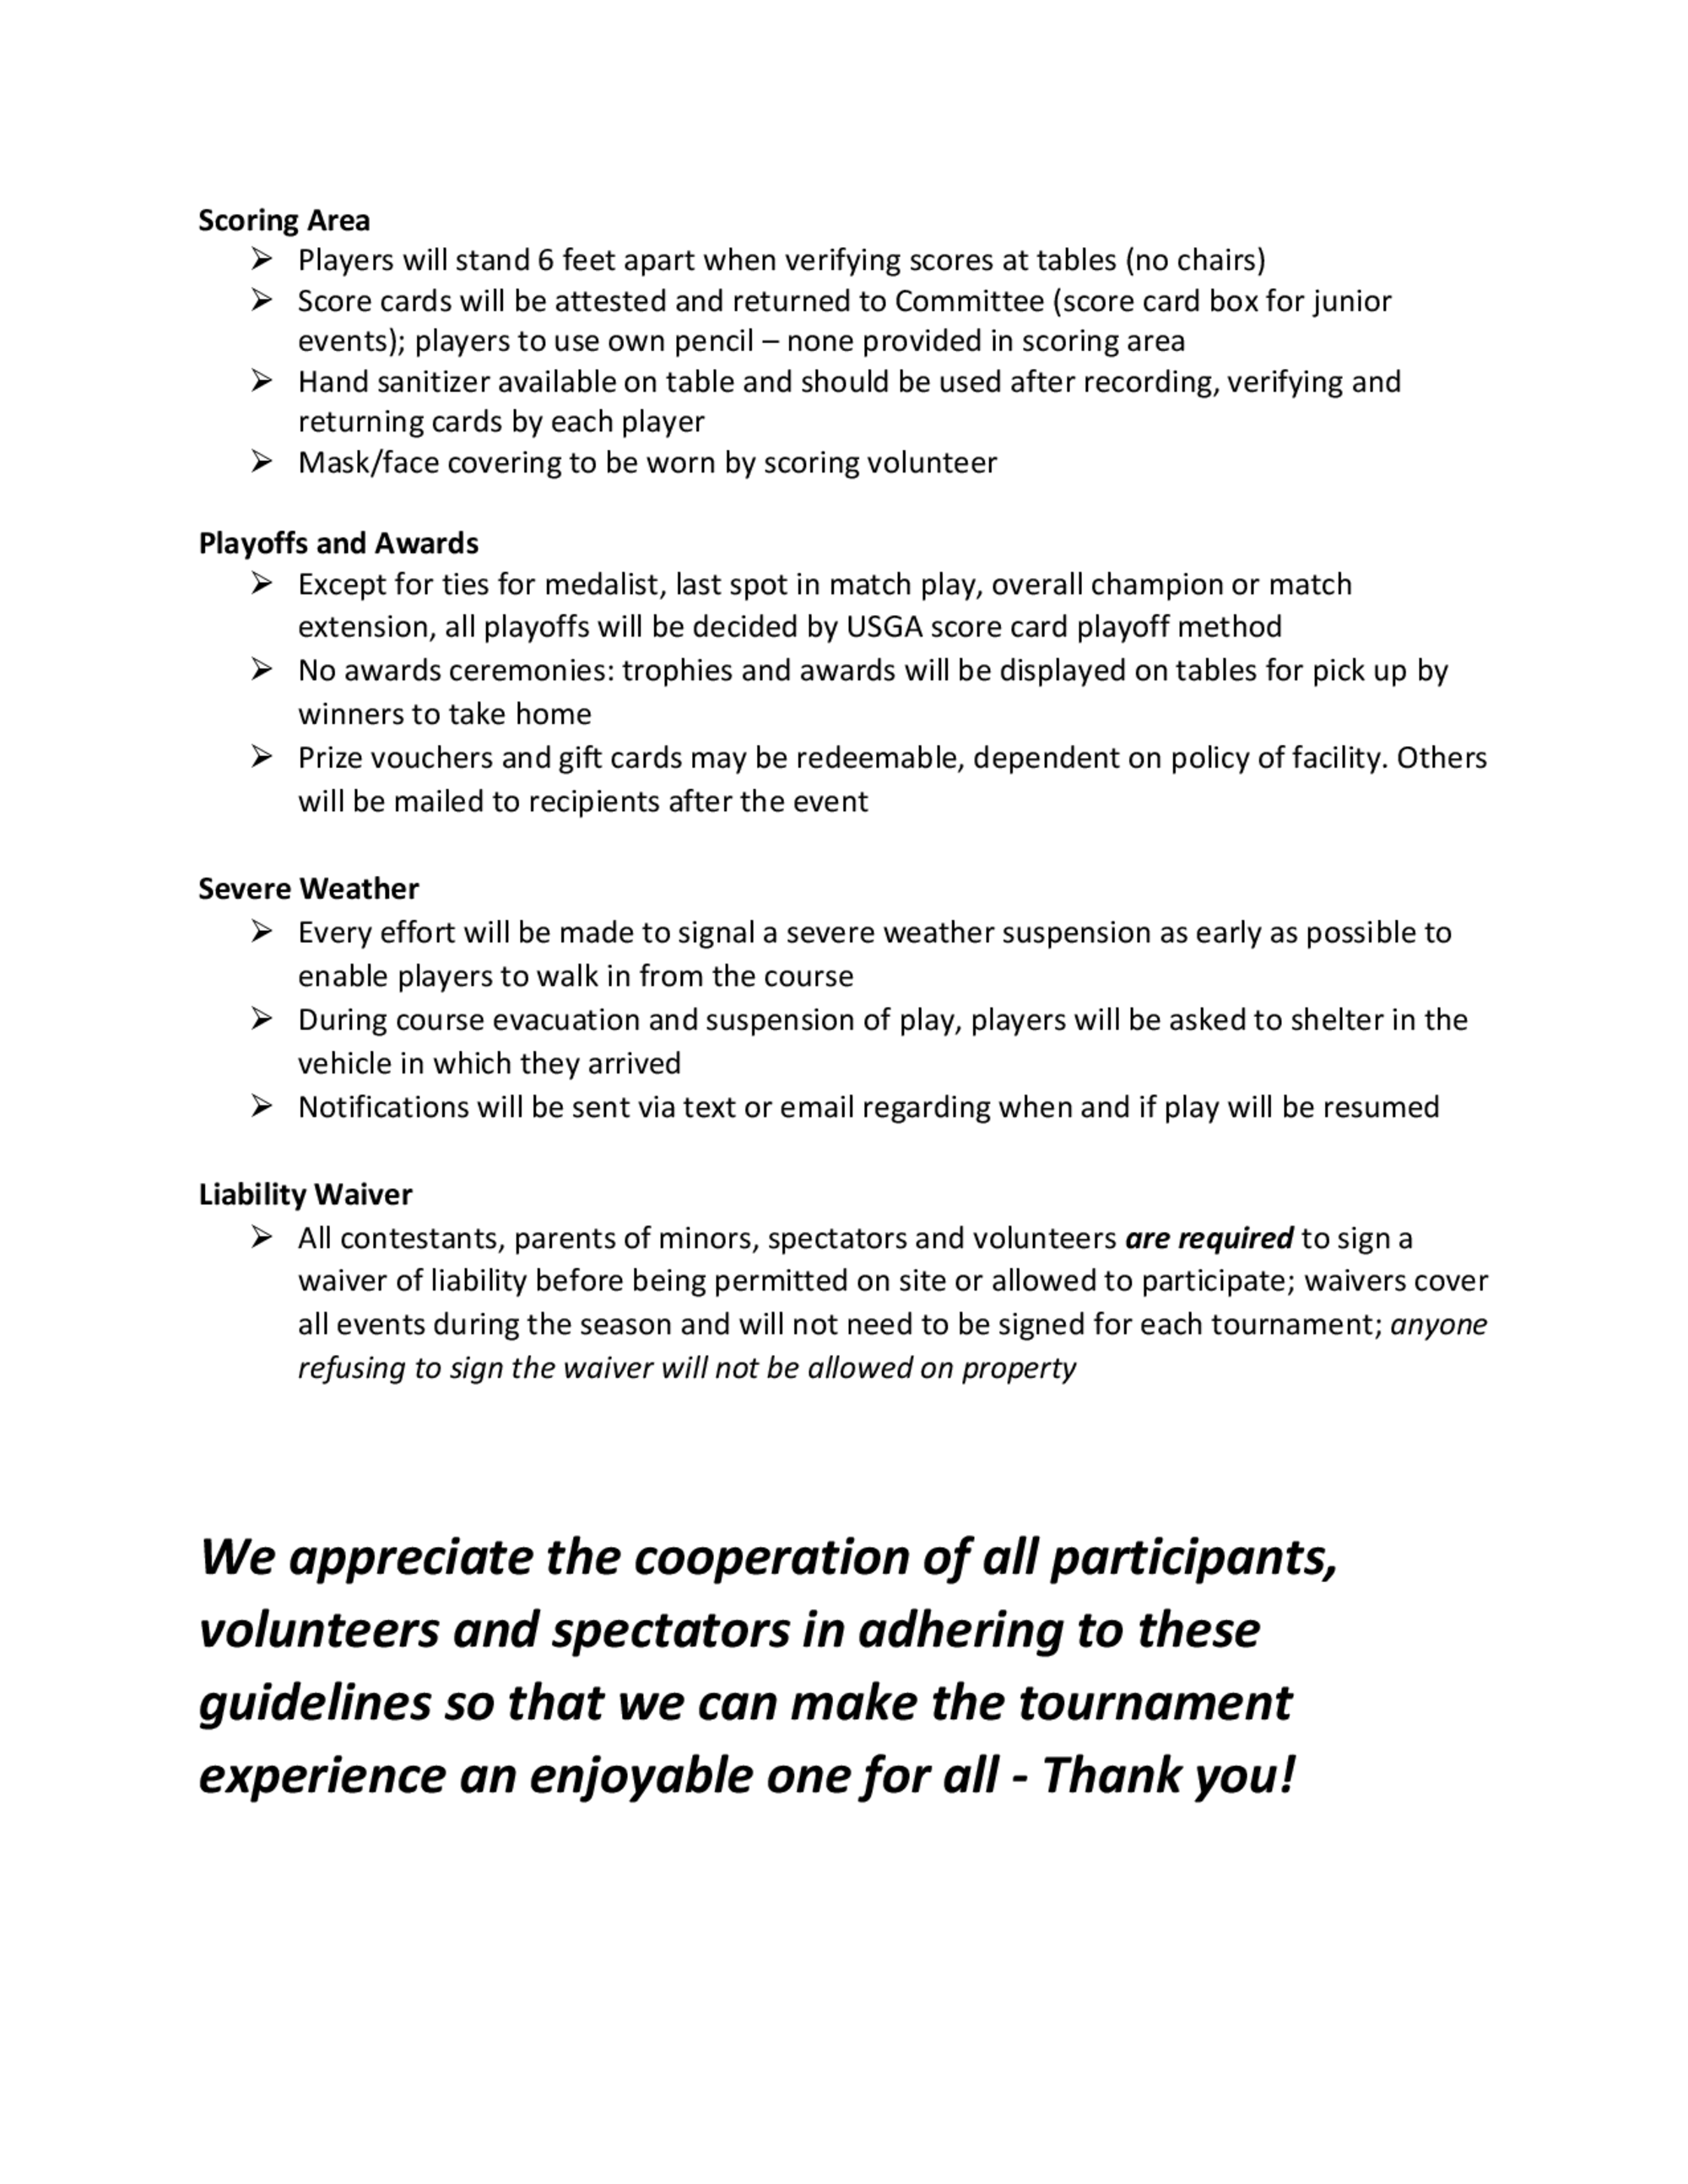 Oga 2020 covid guidelines for competitions 4